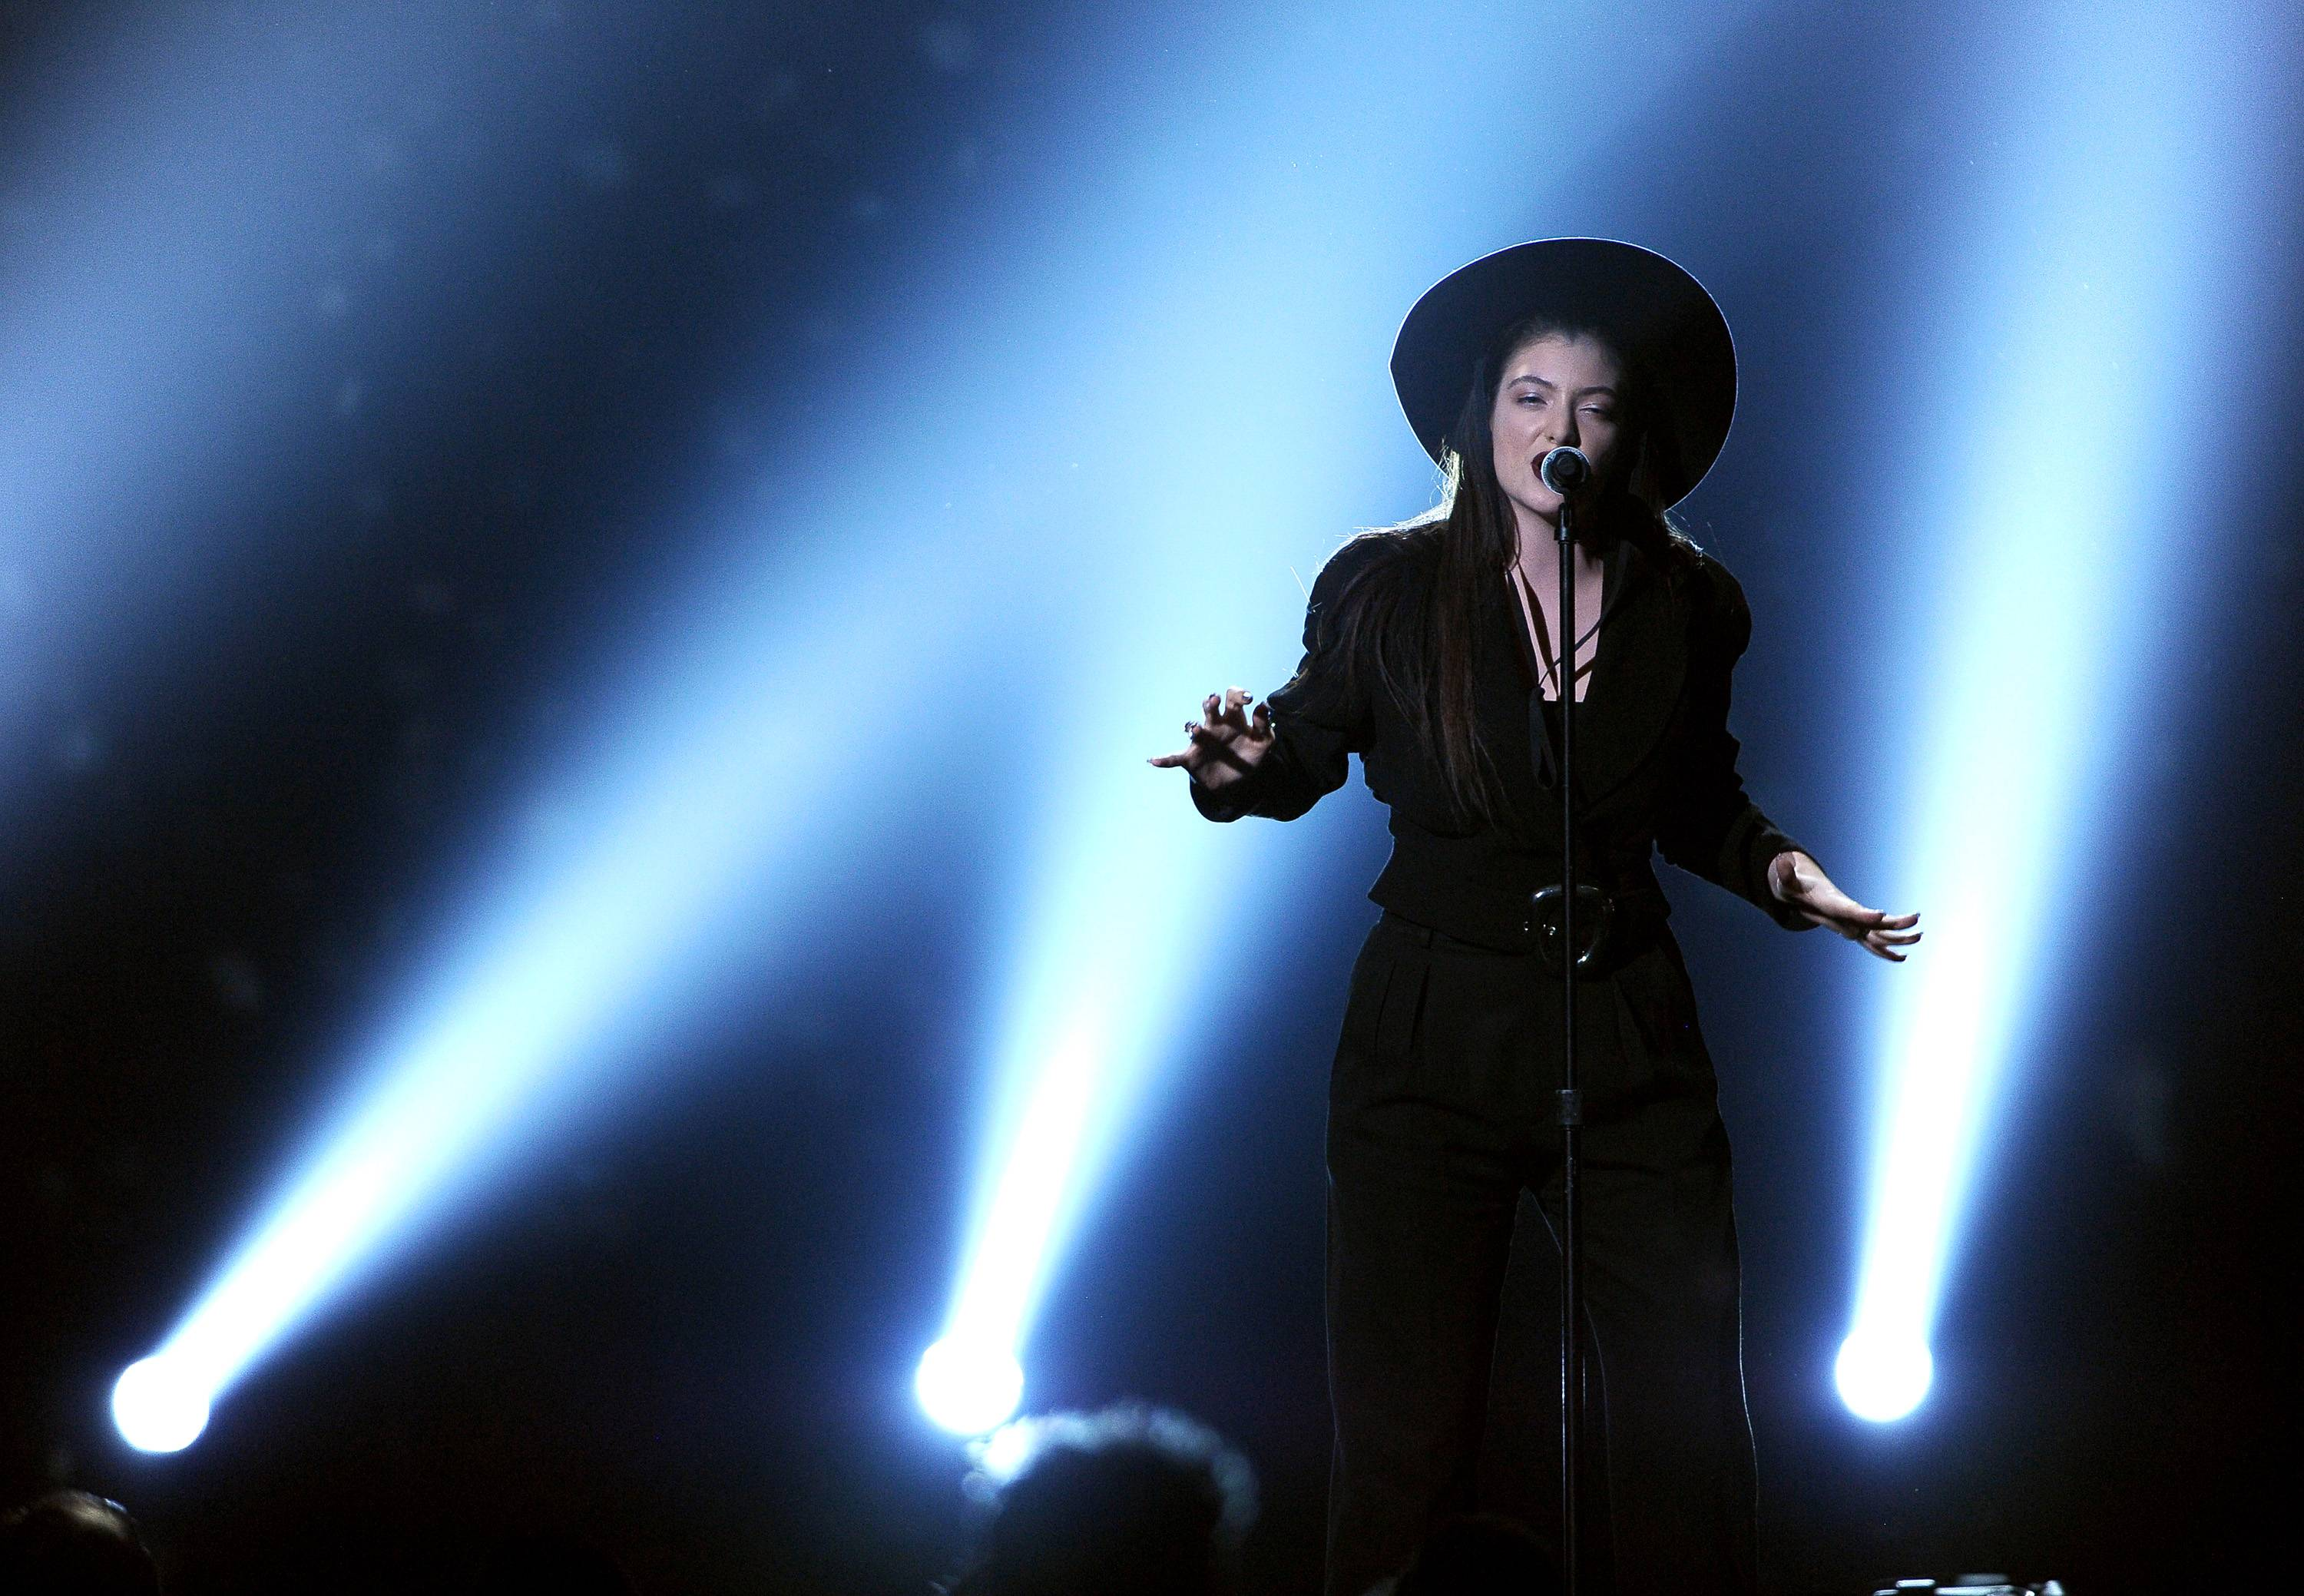 Lorde performs at the Billboard Music Awards at the MGM Grand Garden Arena on Sunday, May 18, 2014, in Las Vegas.